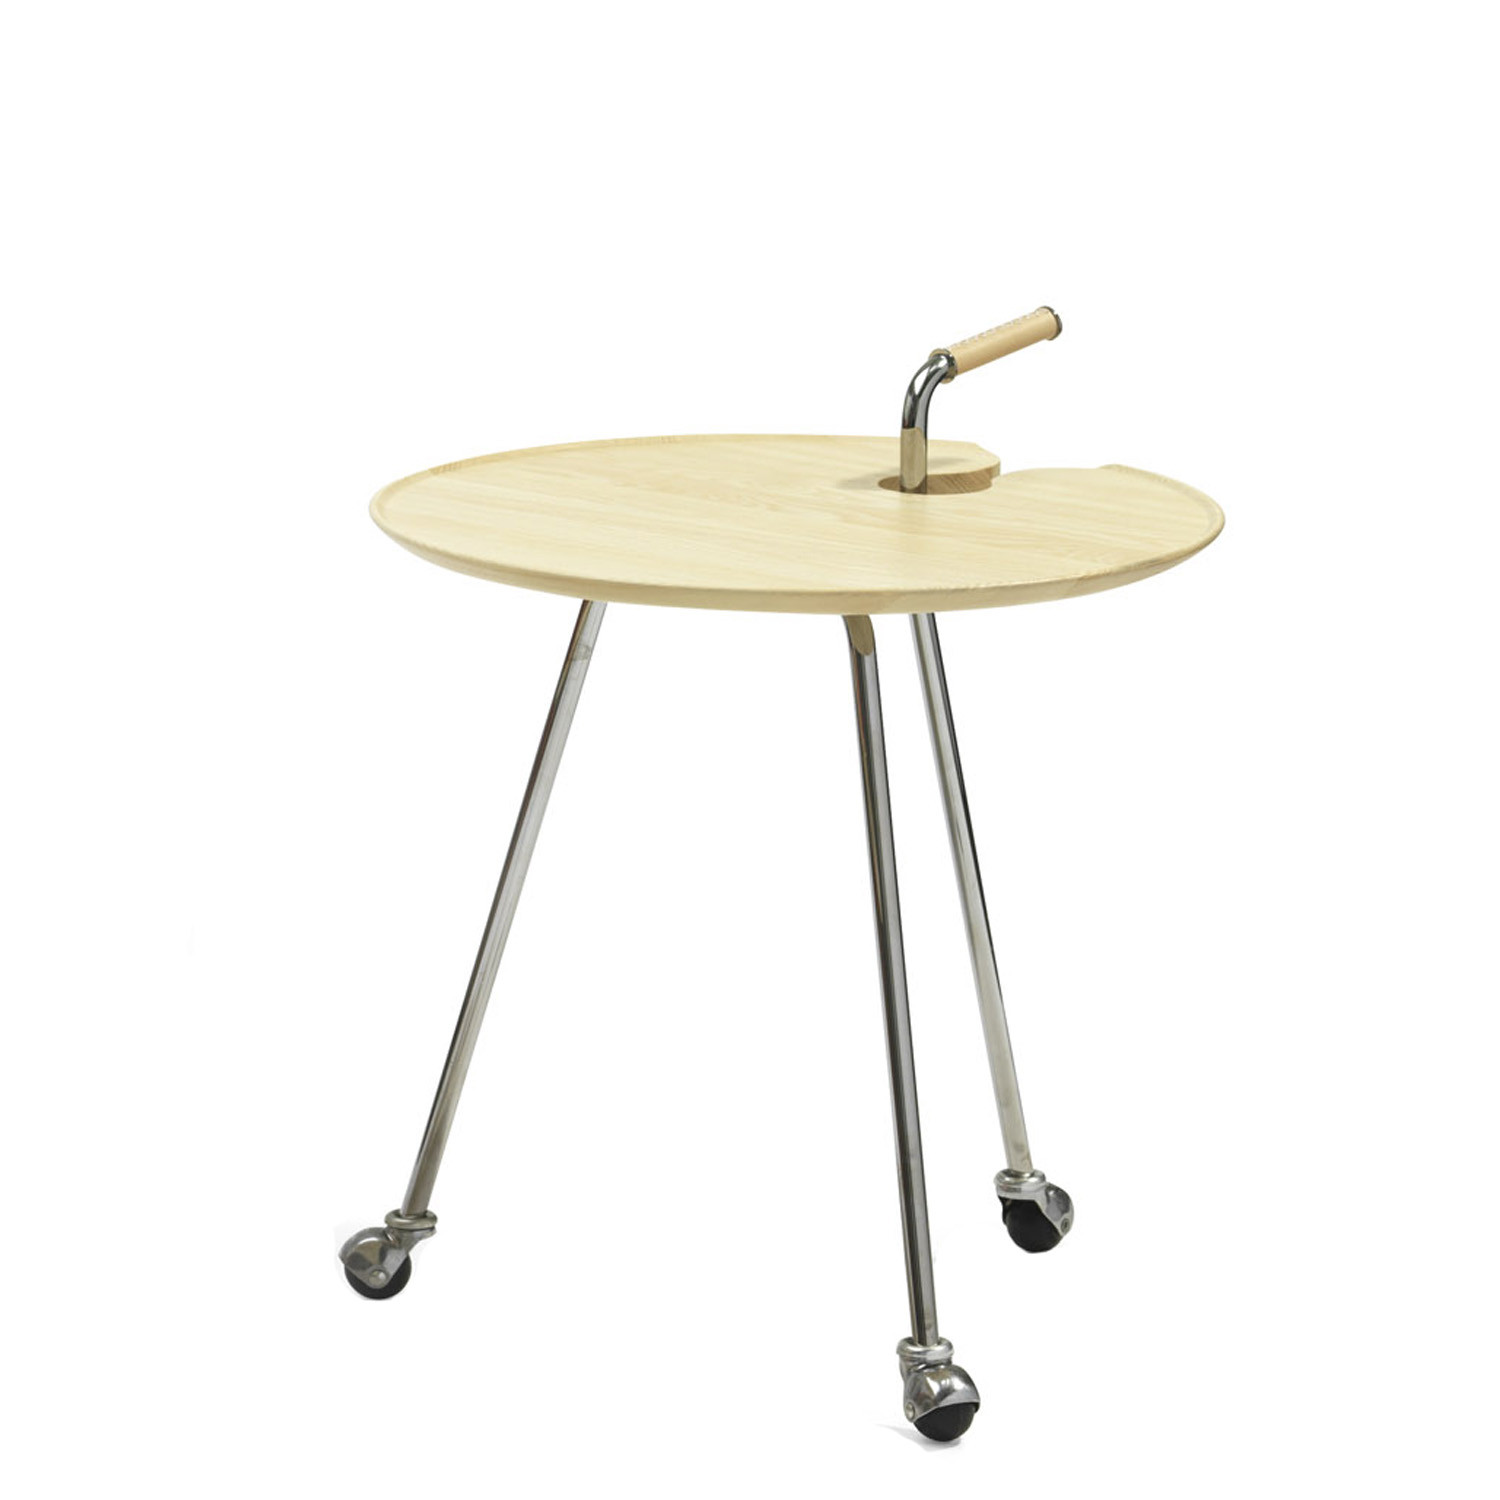 Pond L841 Table Trolley in moulded ash wood